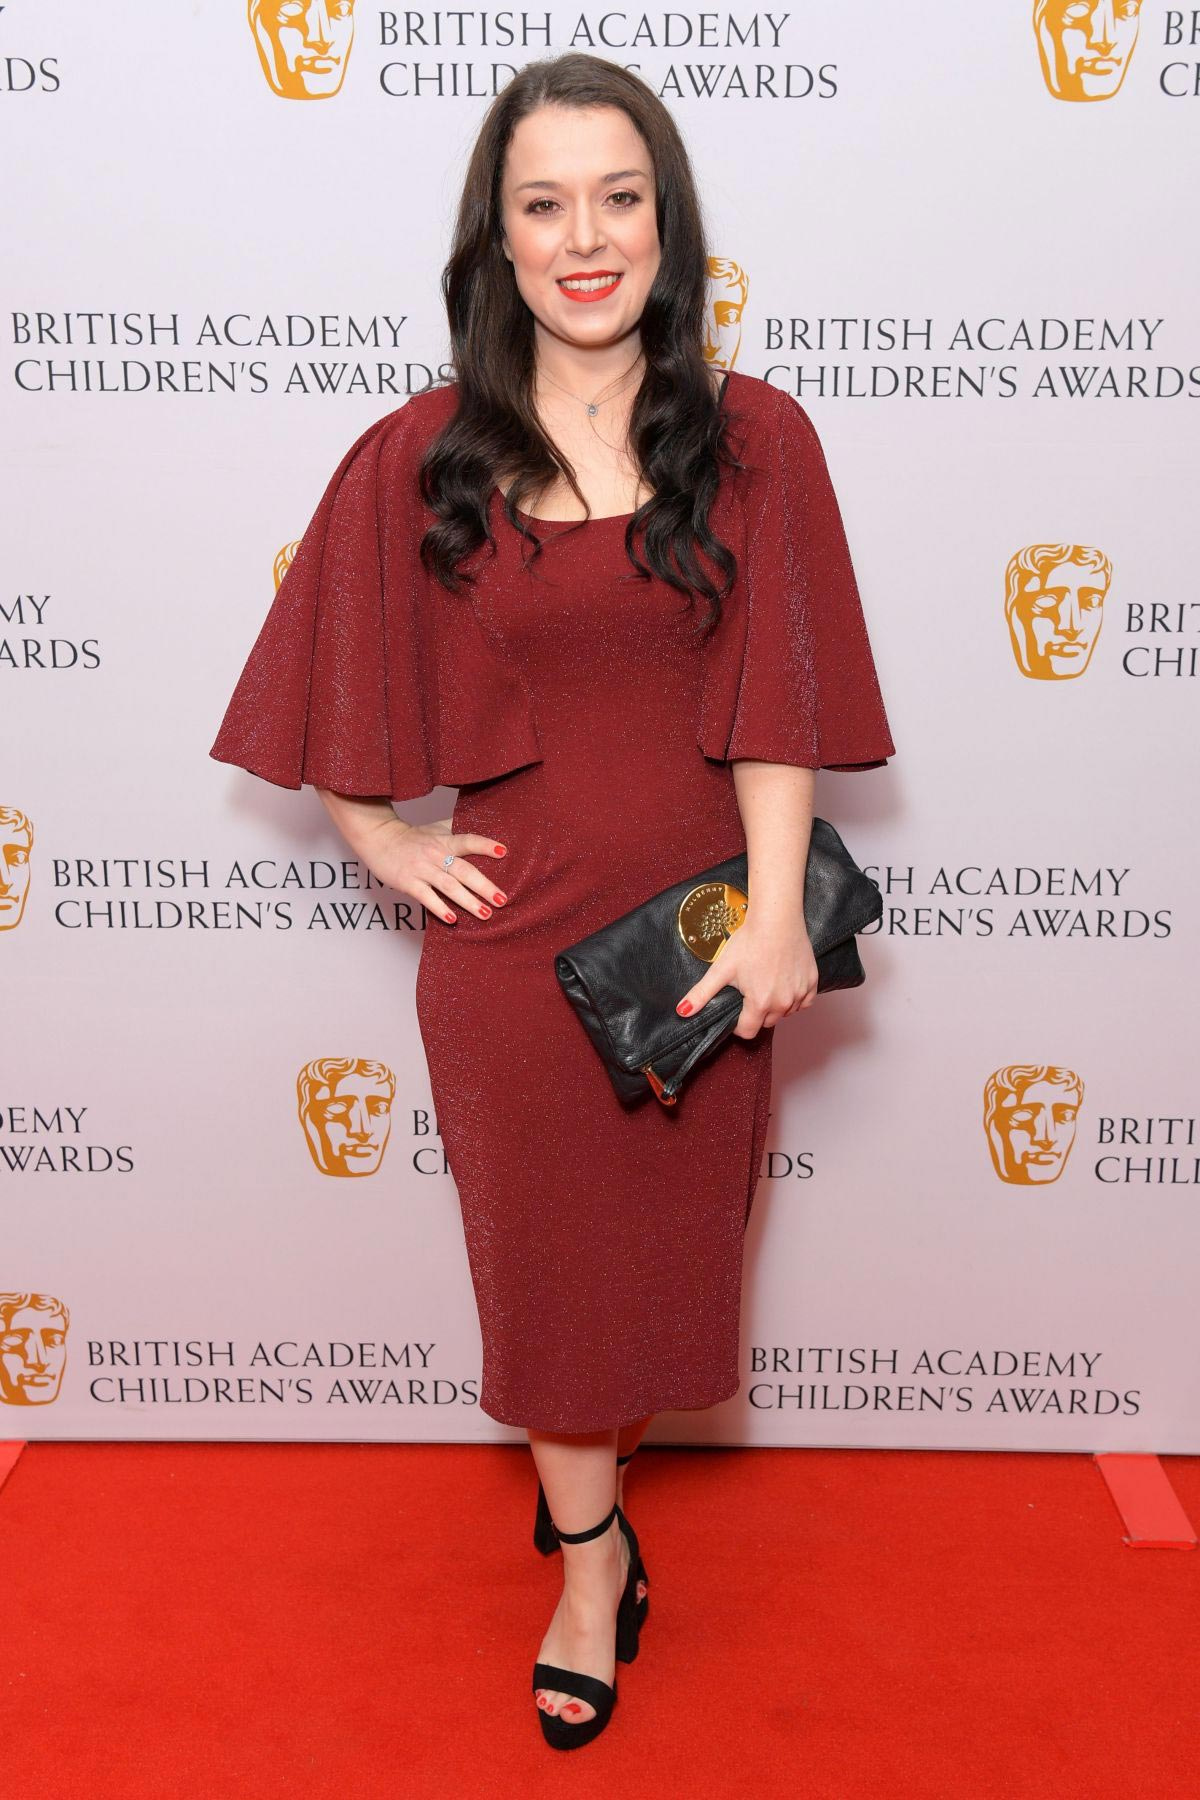 Dani Harmer at British Academy Children's Awards 2018 in London 2018/11/25 1